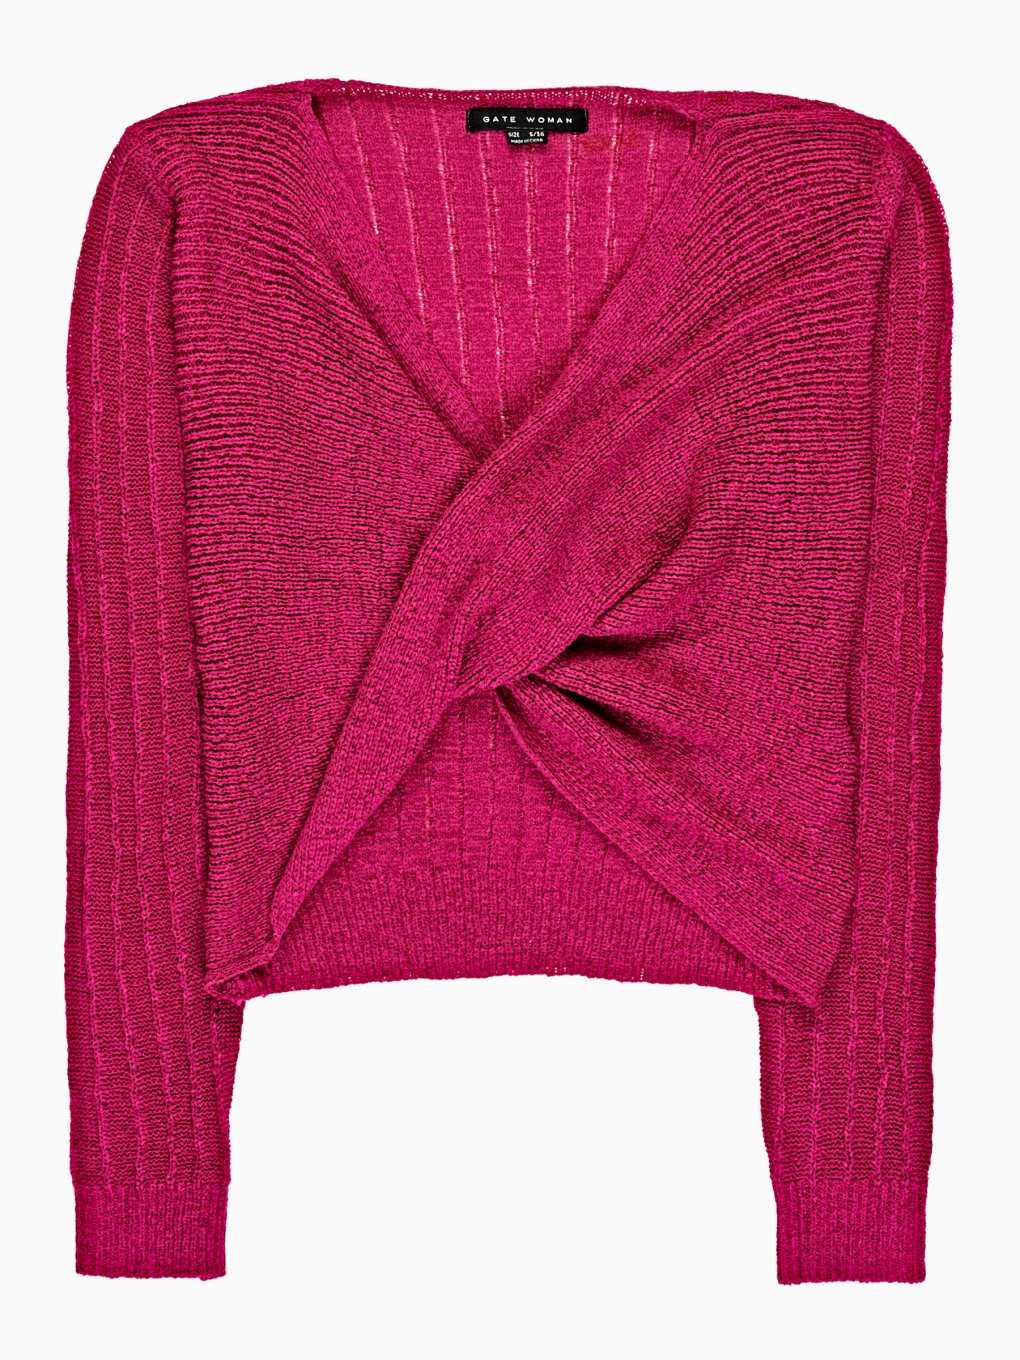 Knot front pullover